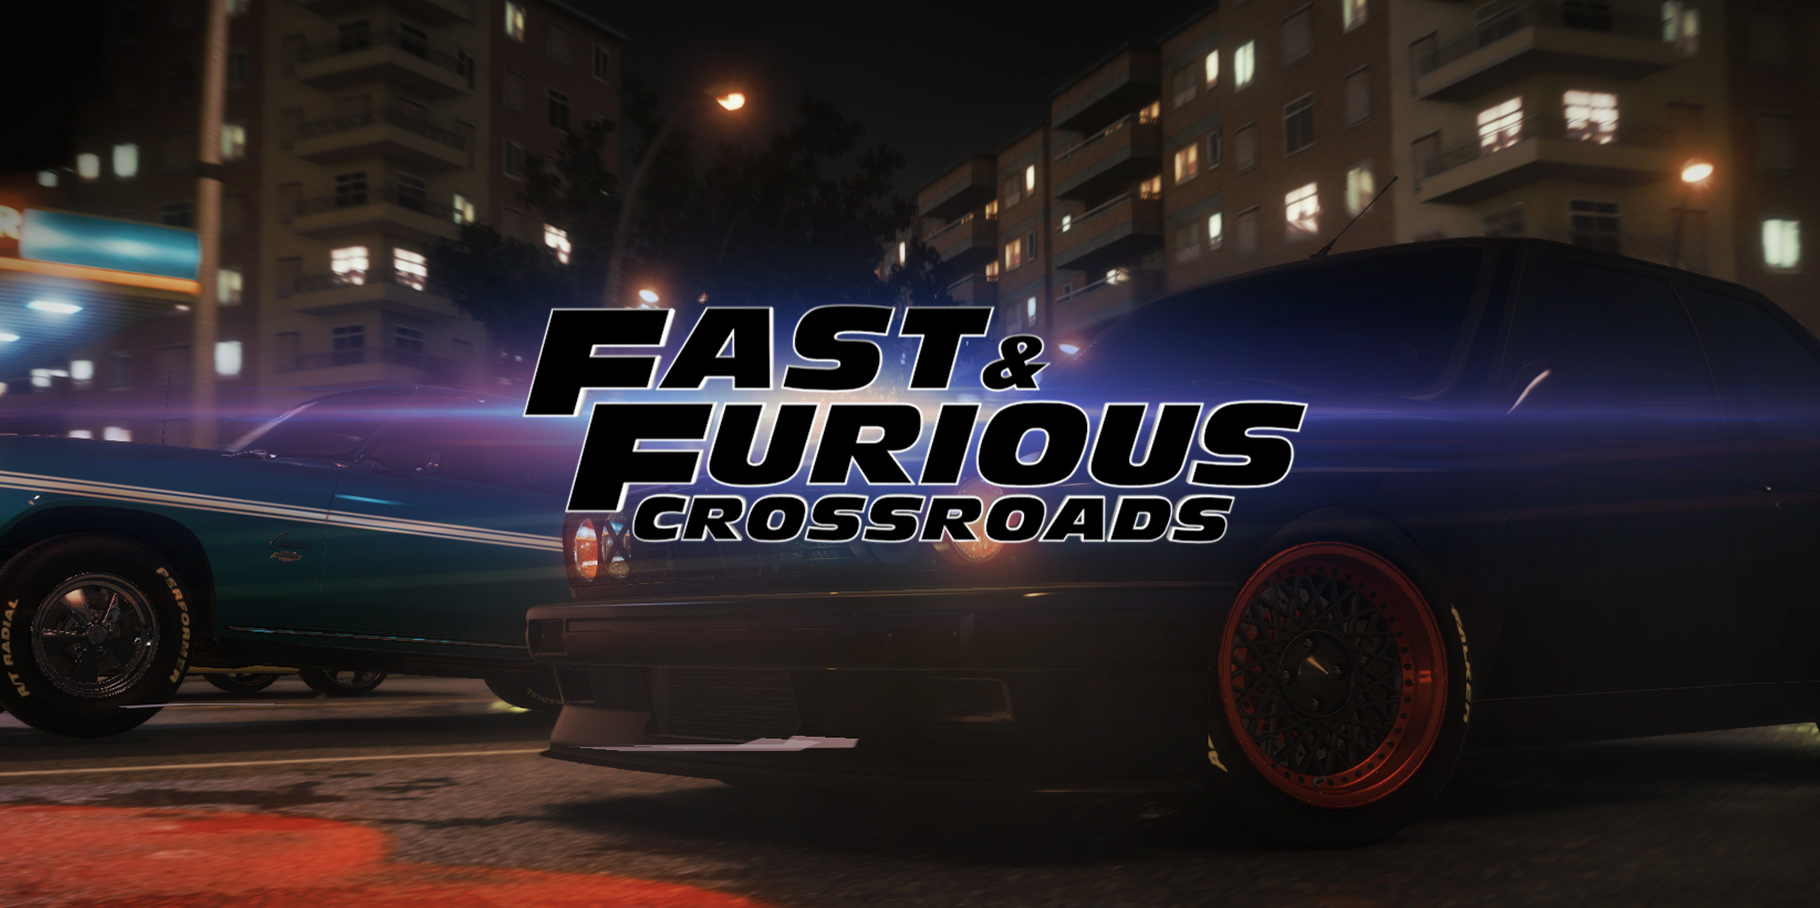 Artwork for Fast & Furious Crossroads